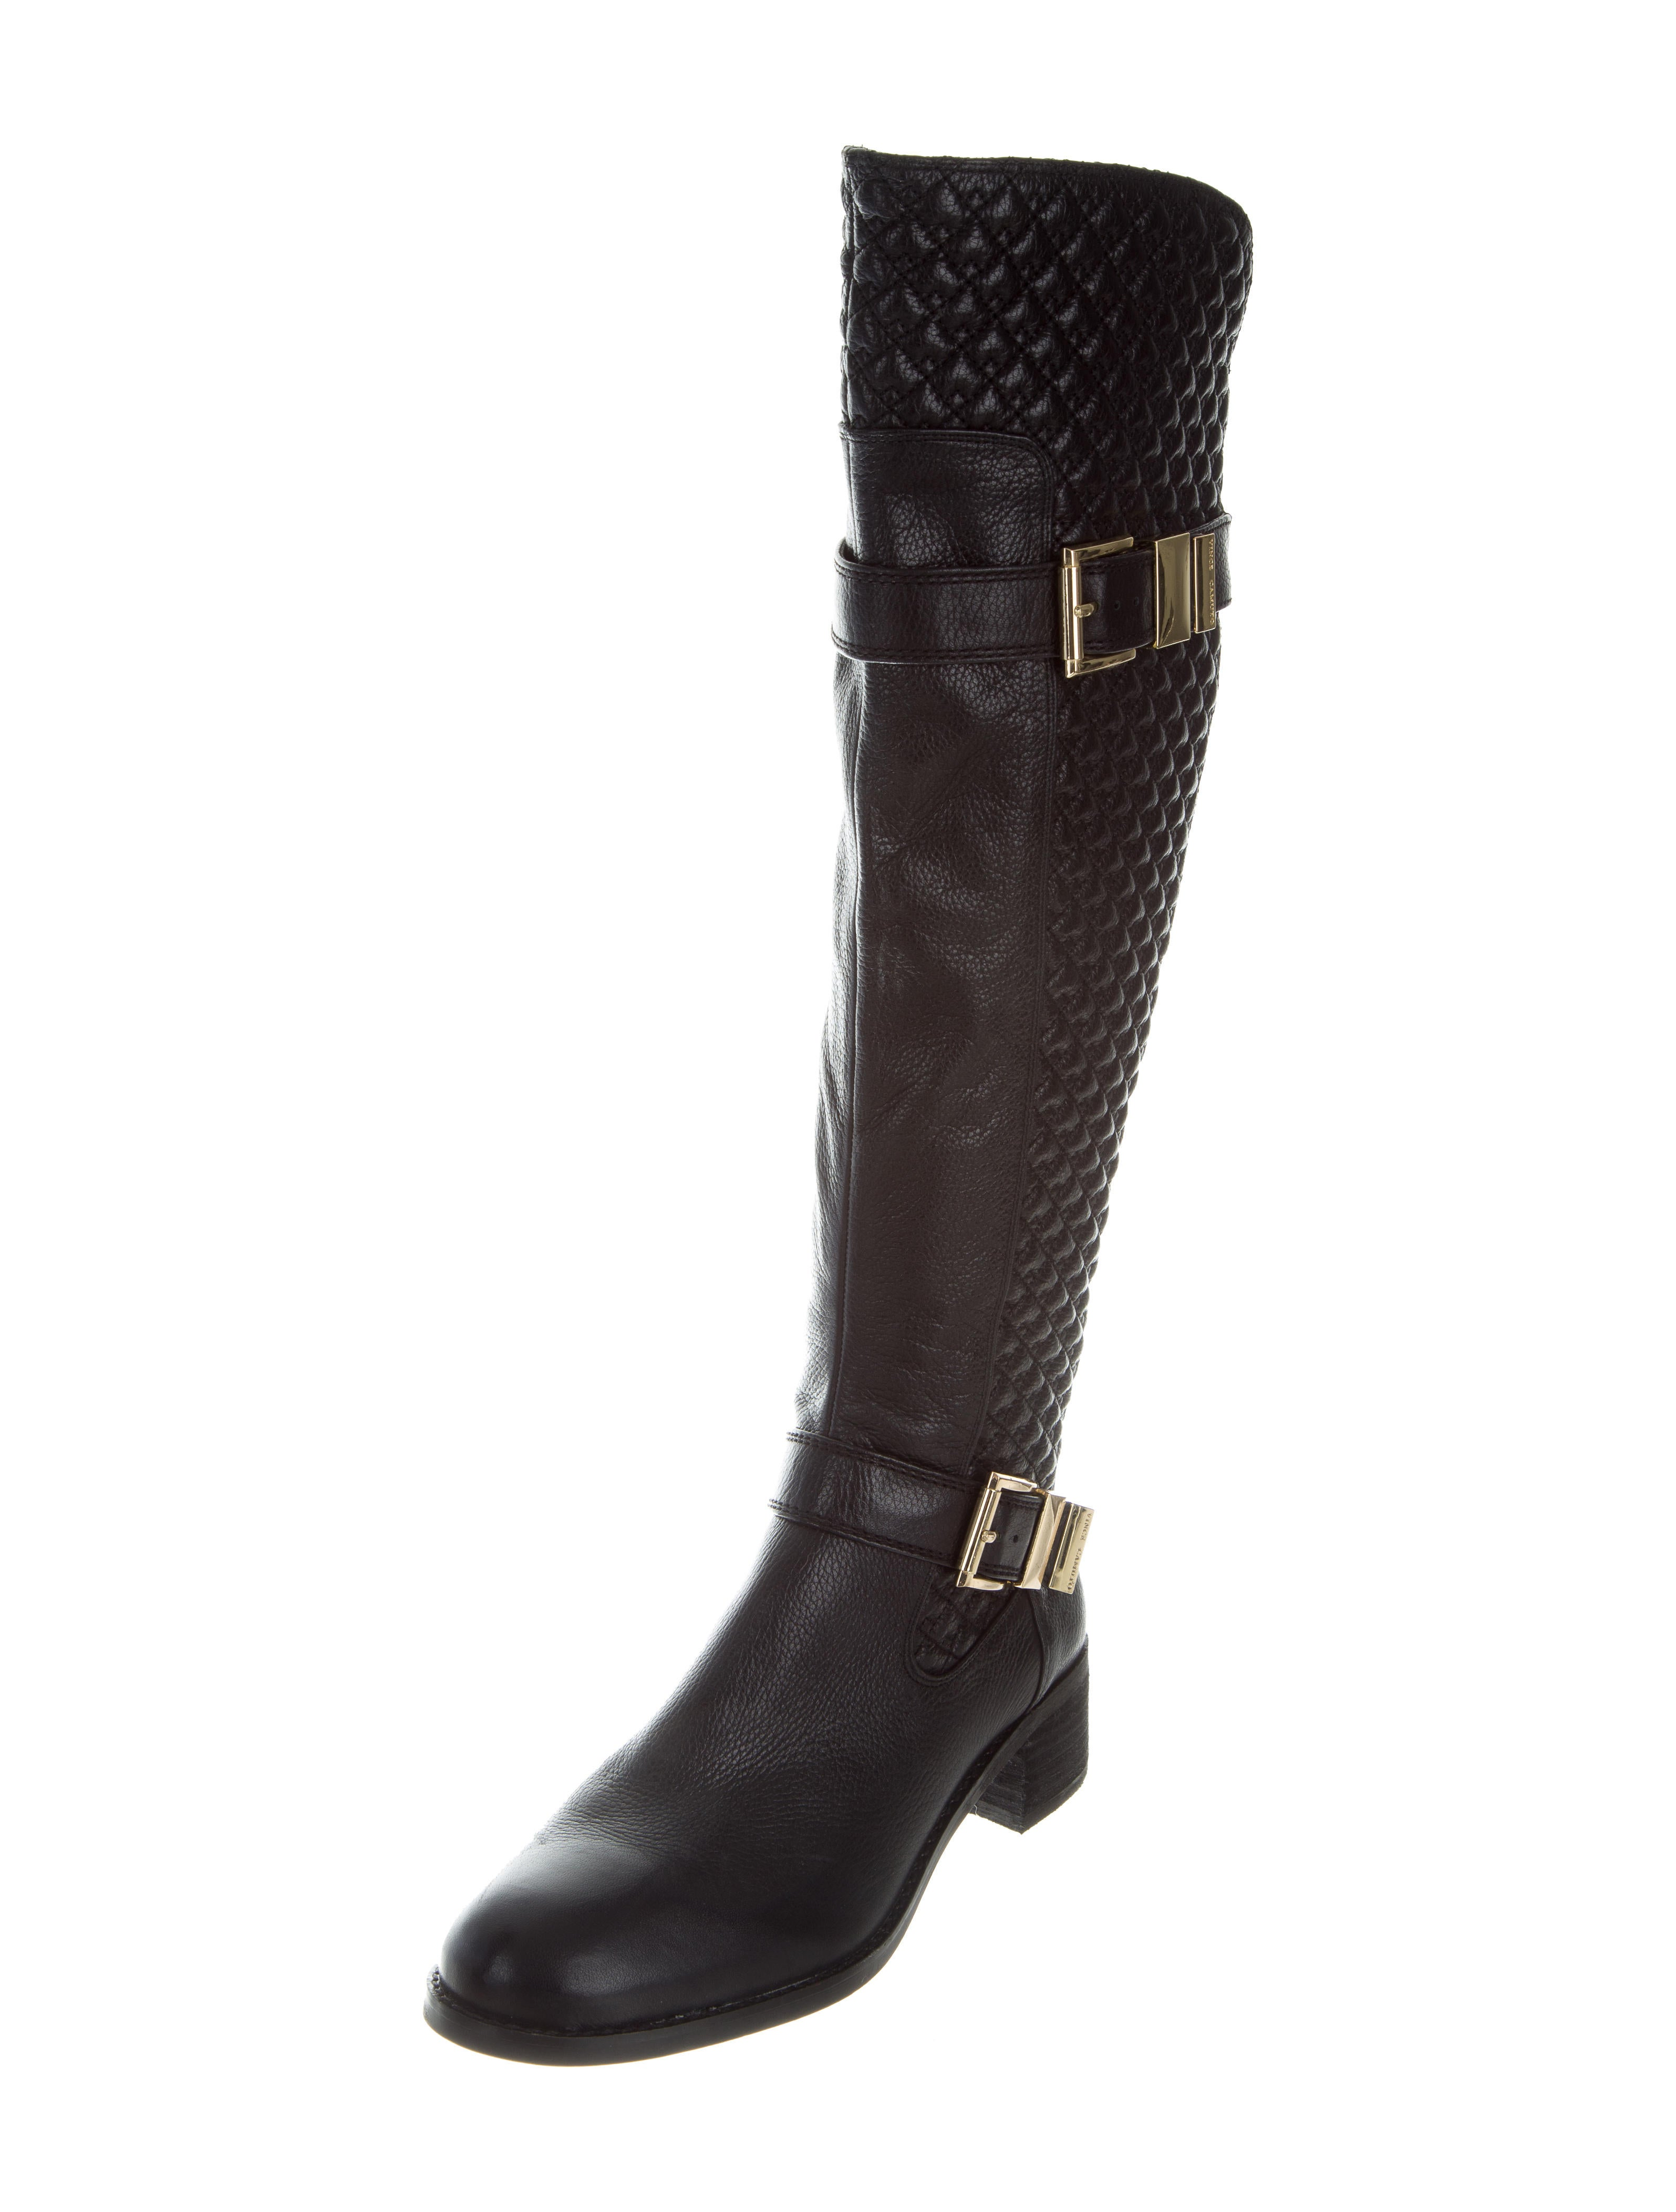 Find great deals on eBay for quilted leather boots. Shop with confidence.